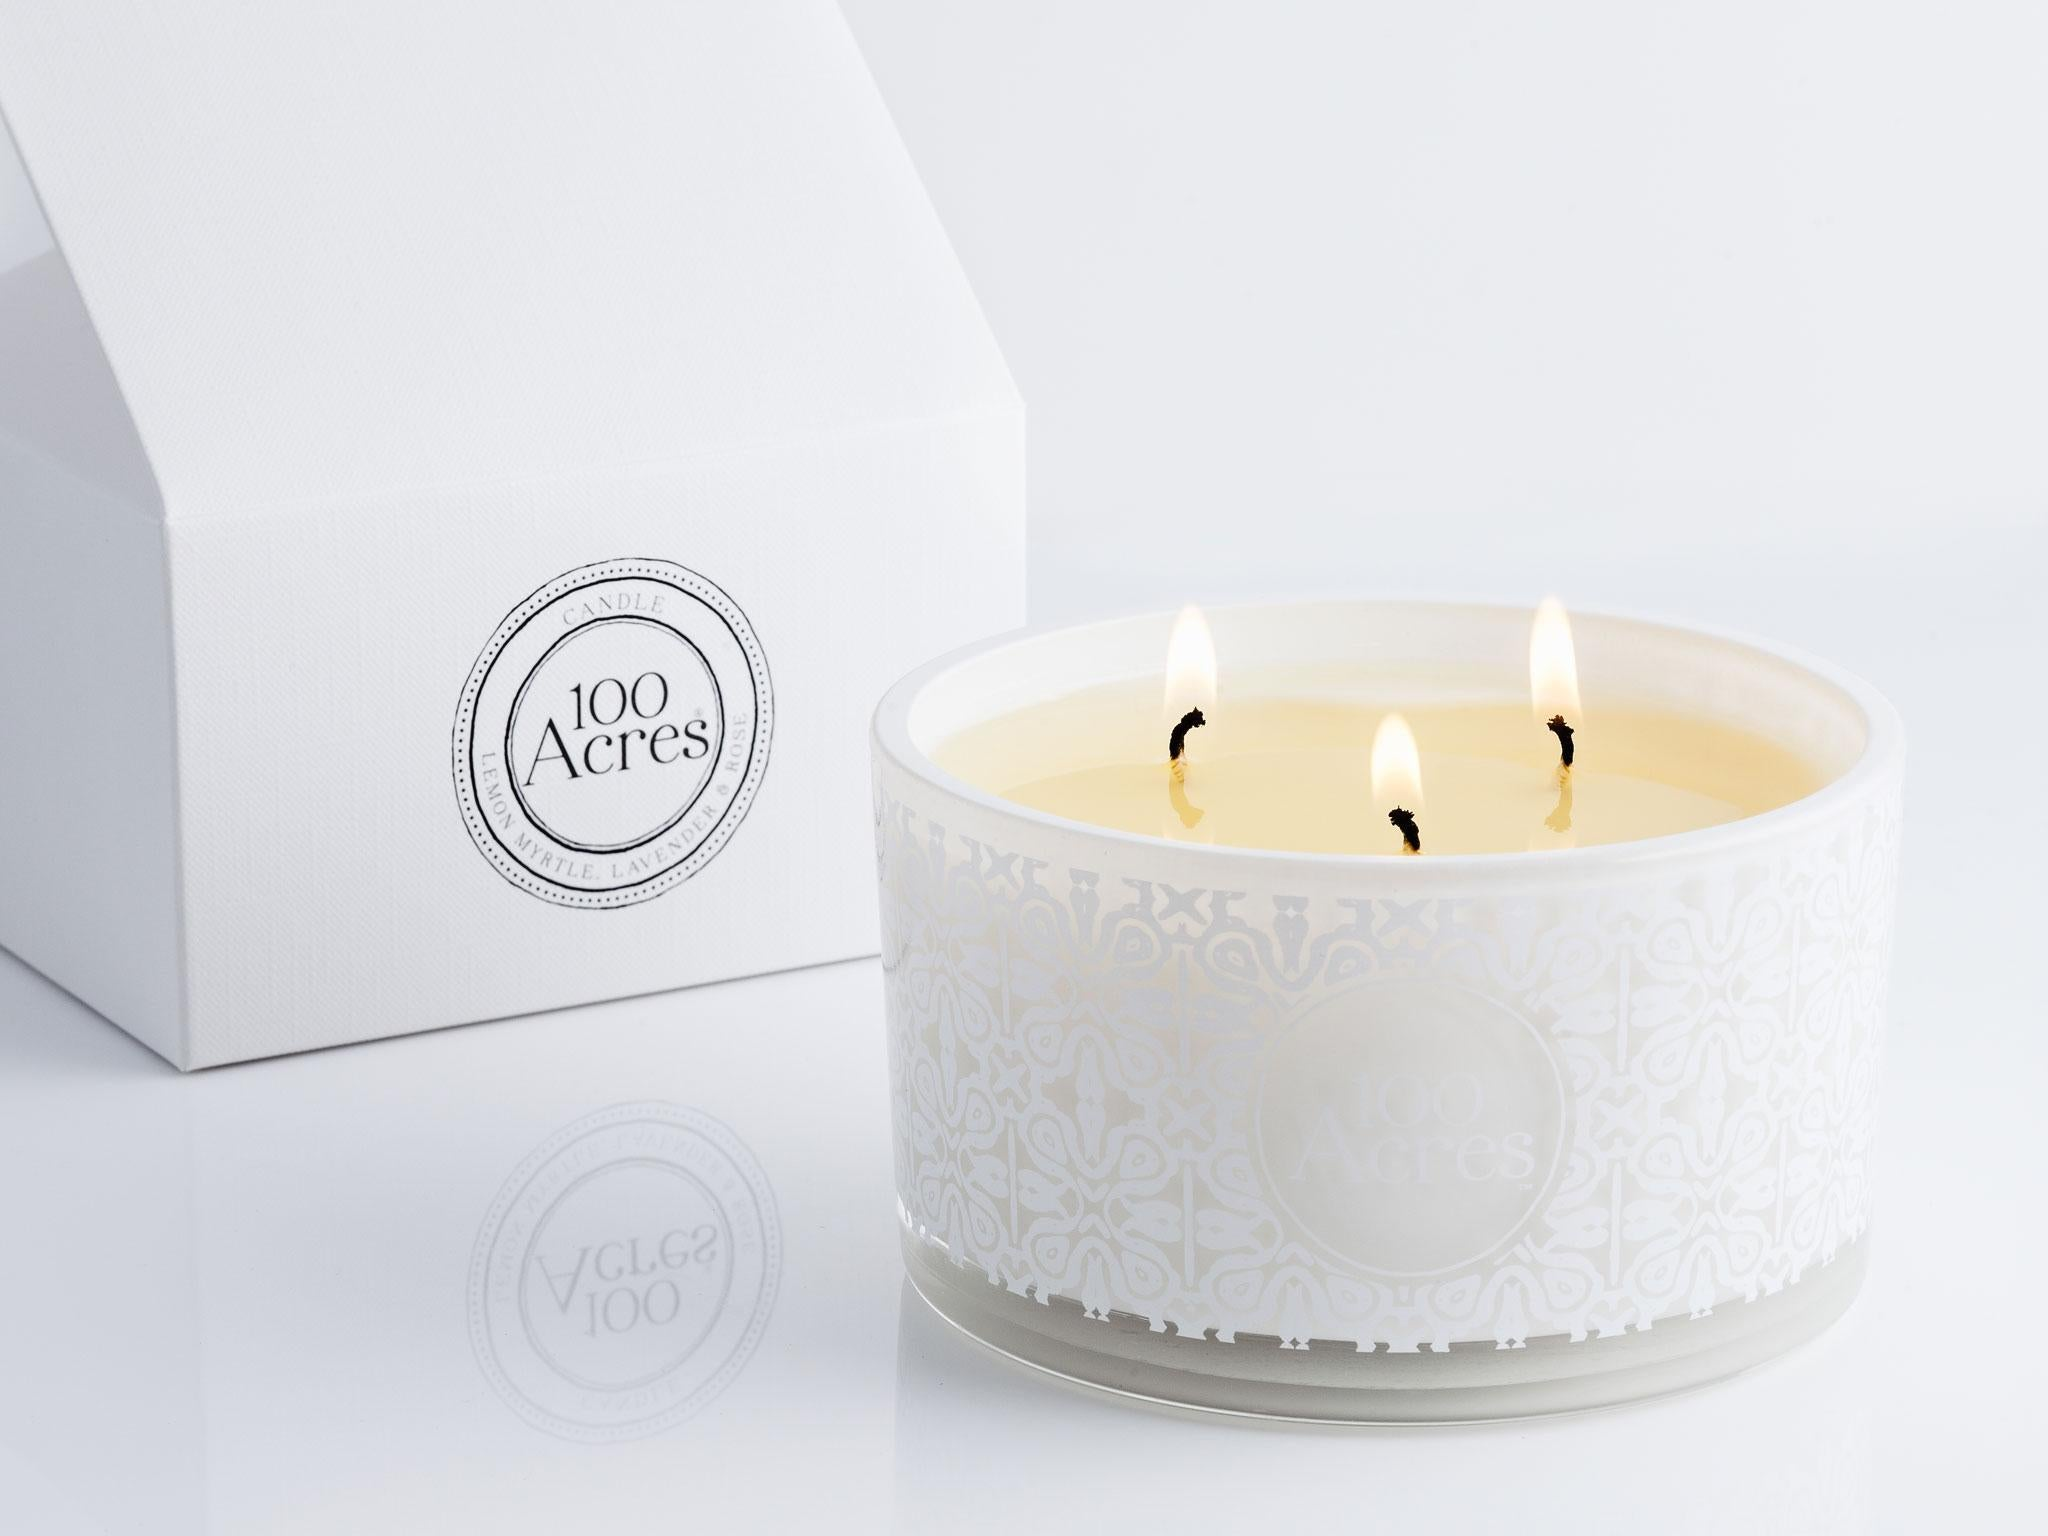 7 Best Non Toxic Candles The Independent Natural Soy Wax Scented Cinnamon Vanilla Hand Poured With Made From And Rapeseed This Triple Wick Candle Is Lemon Myrtle